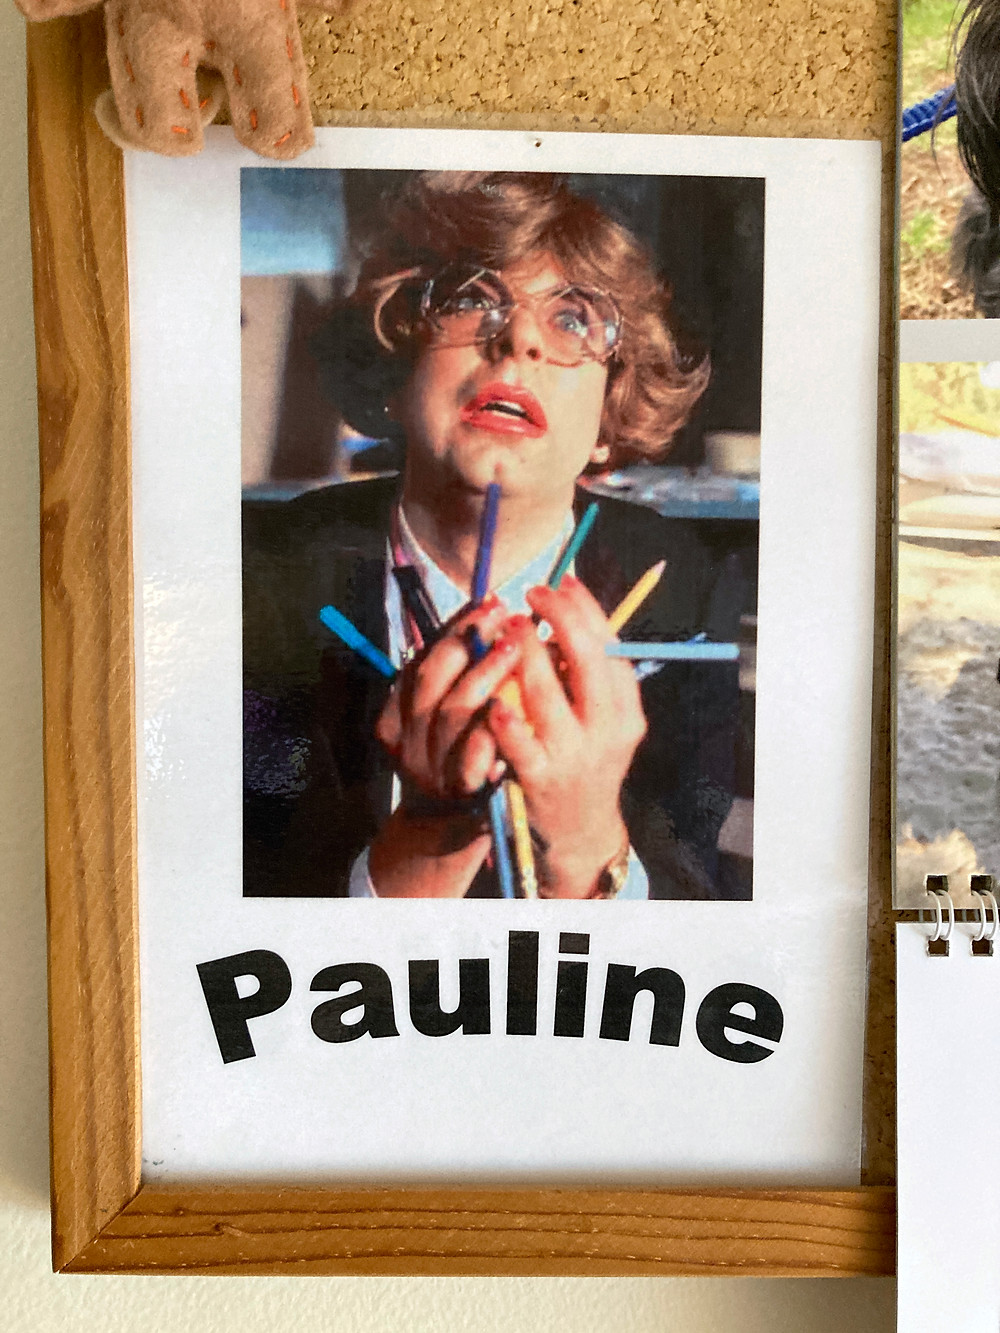 Pauline, League of Gentlemen